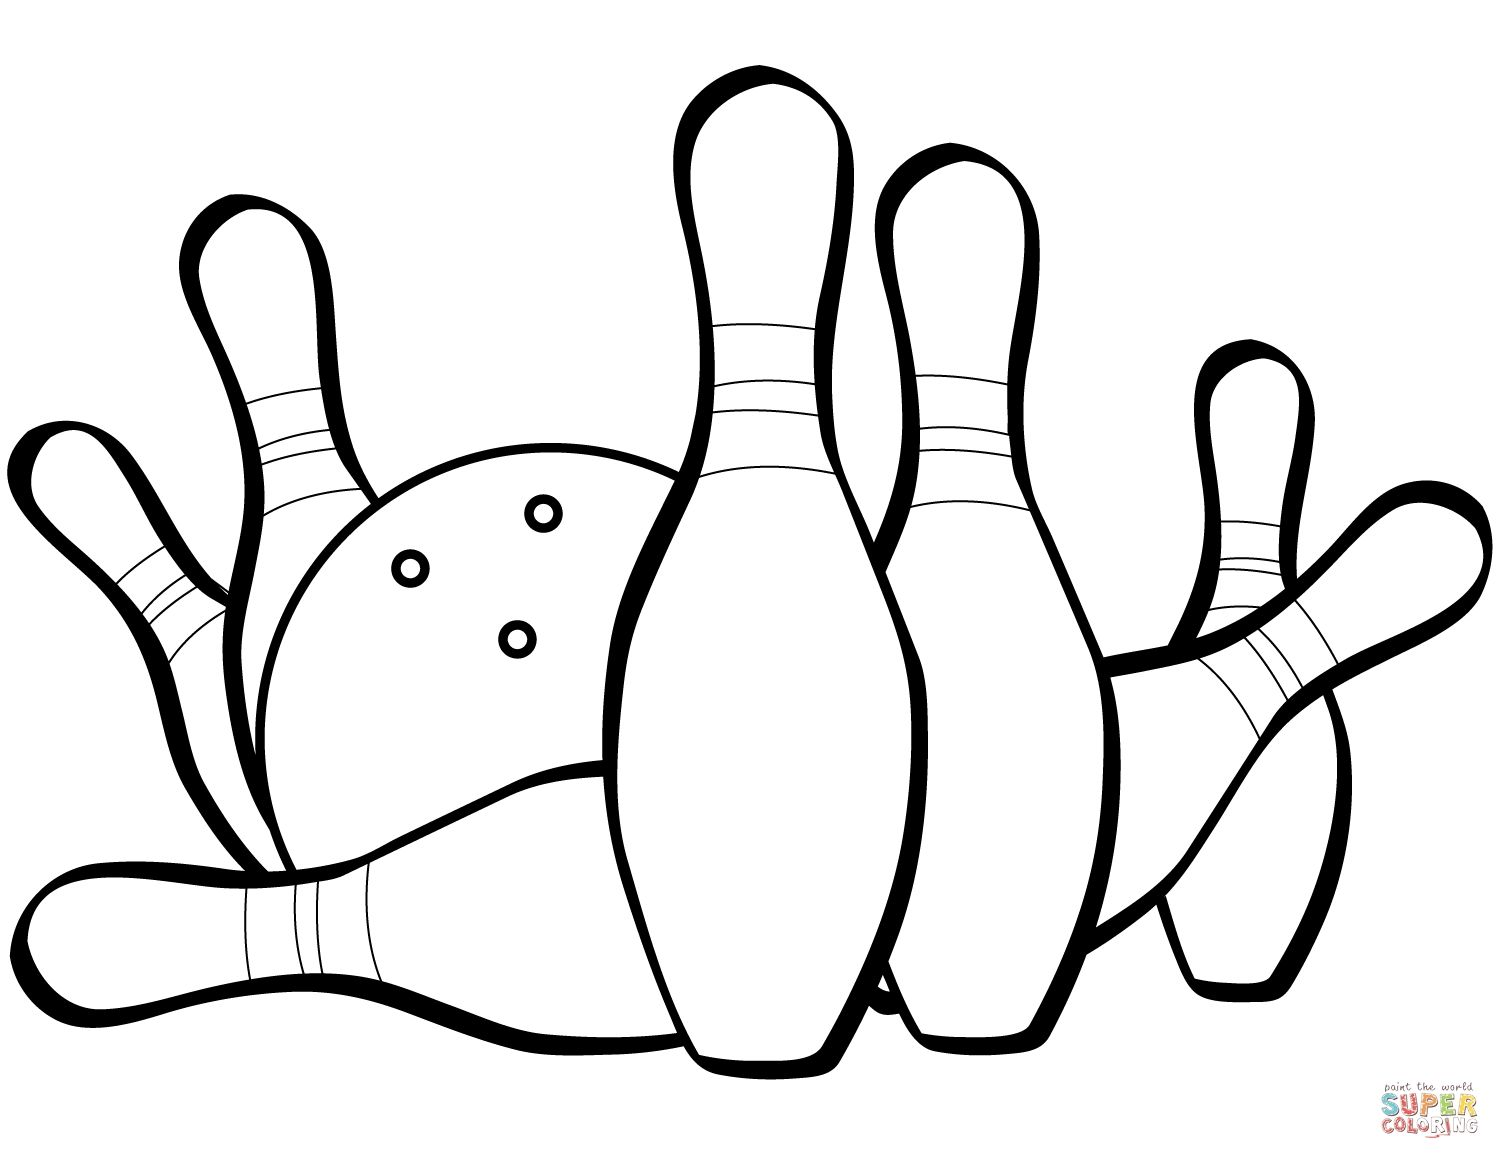 Bowling Coloring Pages Free To Color Coloring Pages Coloring Pages Inspirational Star Coloring Pages